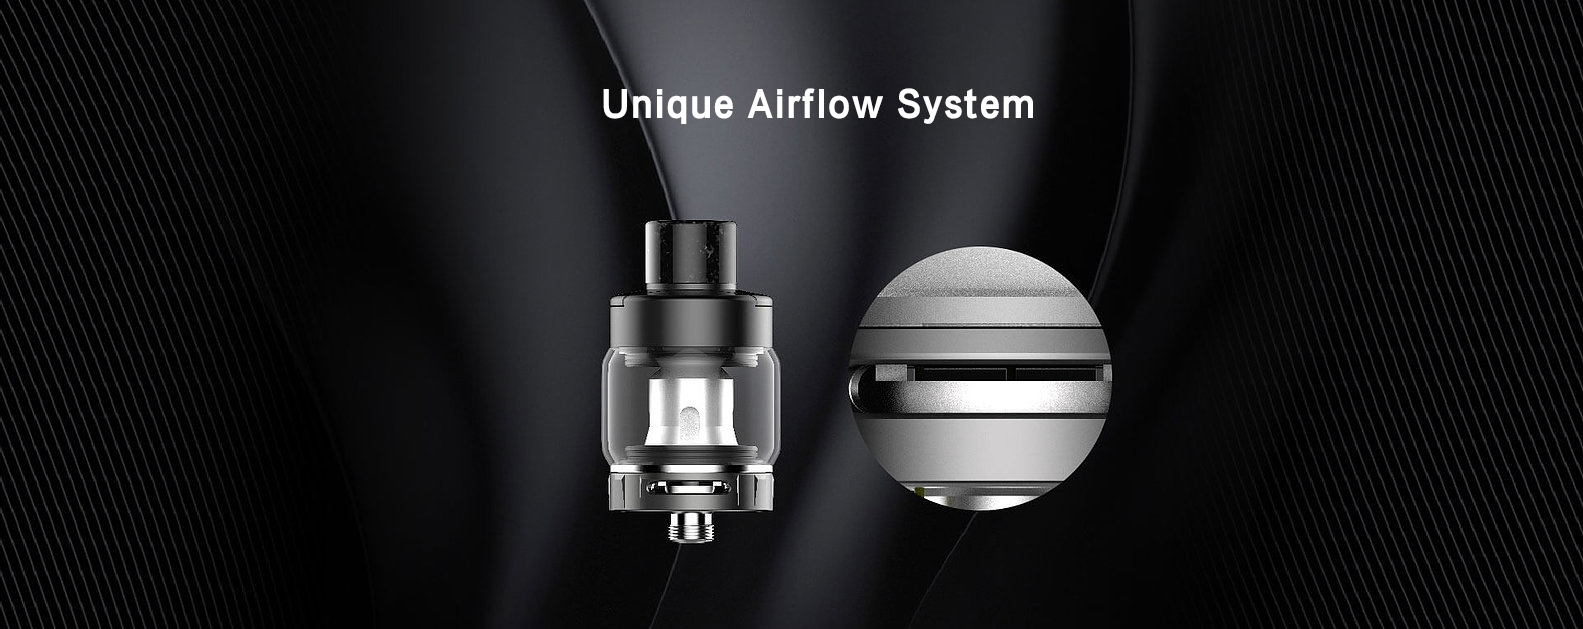 Kanger XLUM Kit Features Unique airflow system